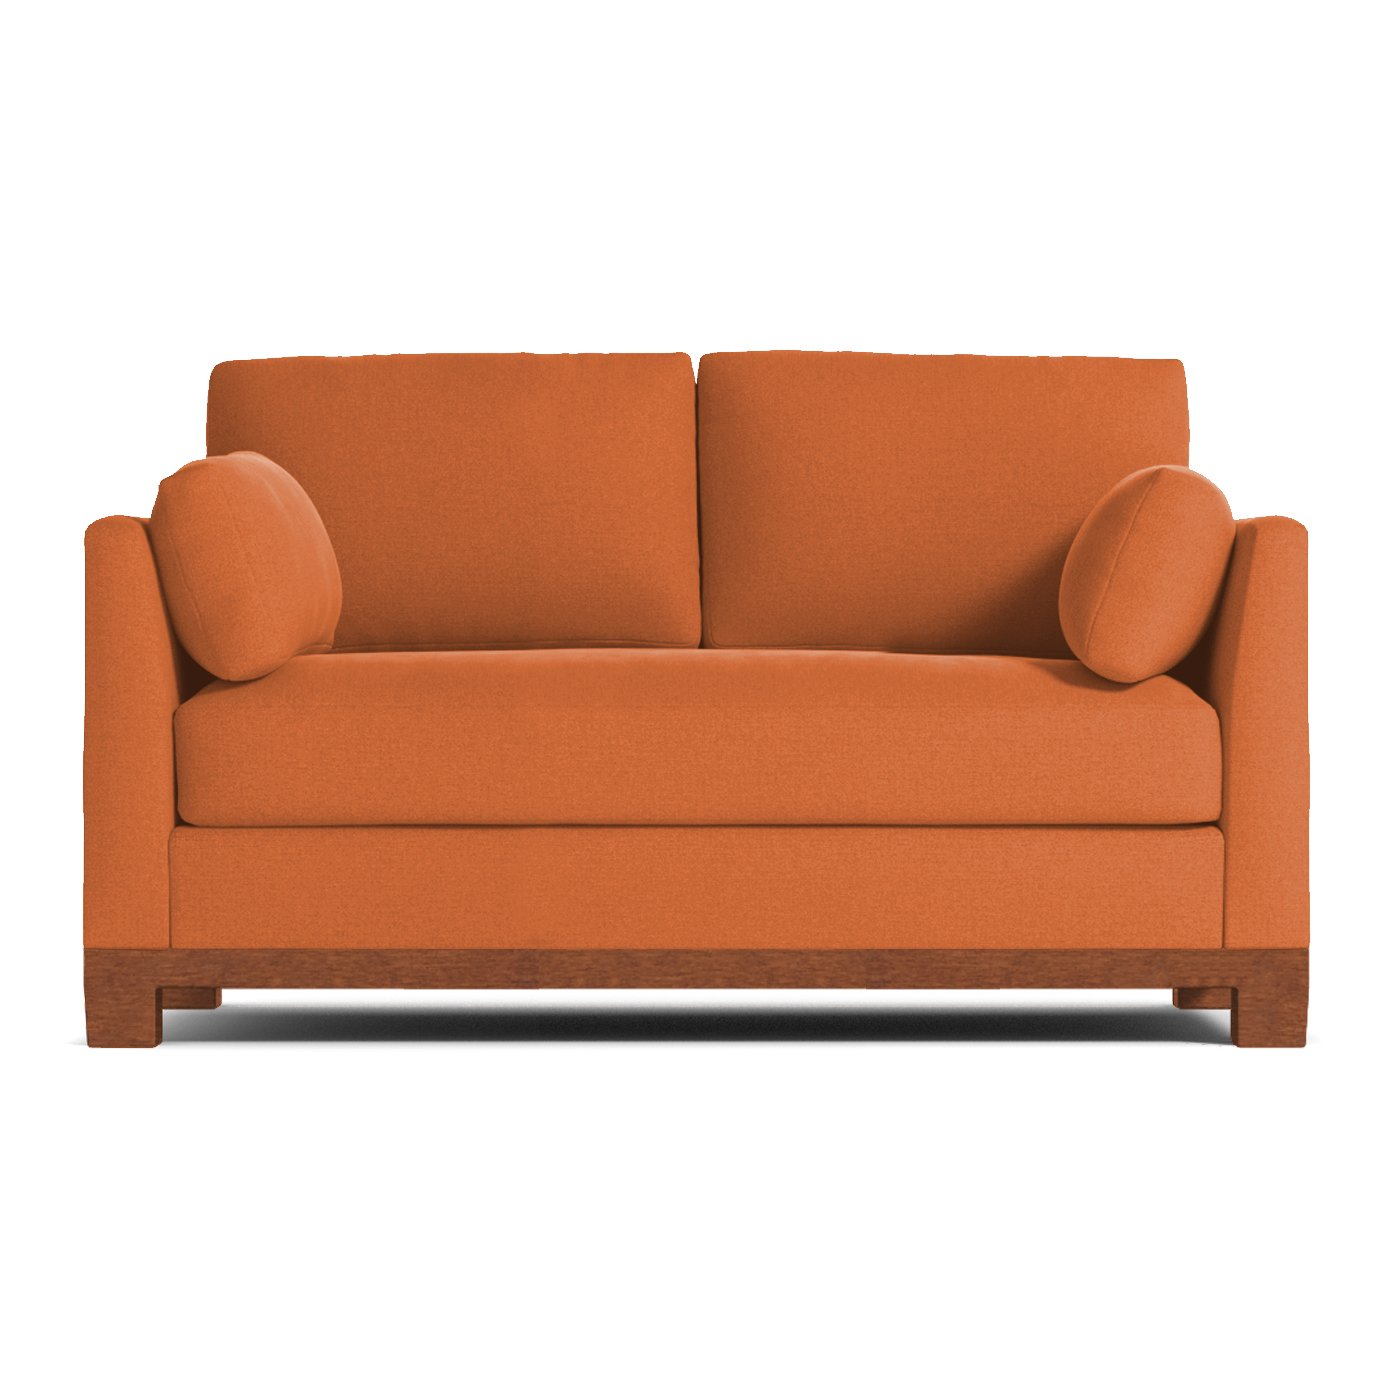 Avalon Apartment Size Sleeper Sofa - Choice of Fabrics - Apt2B